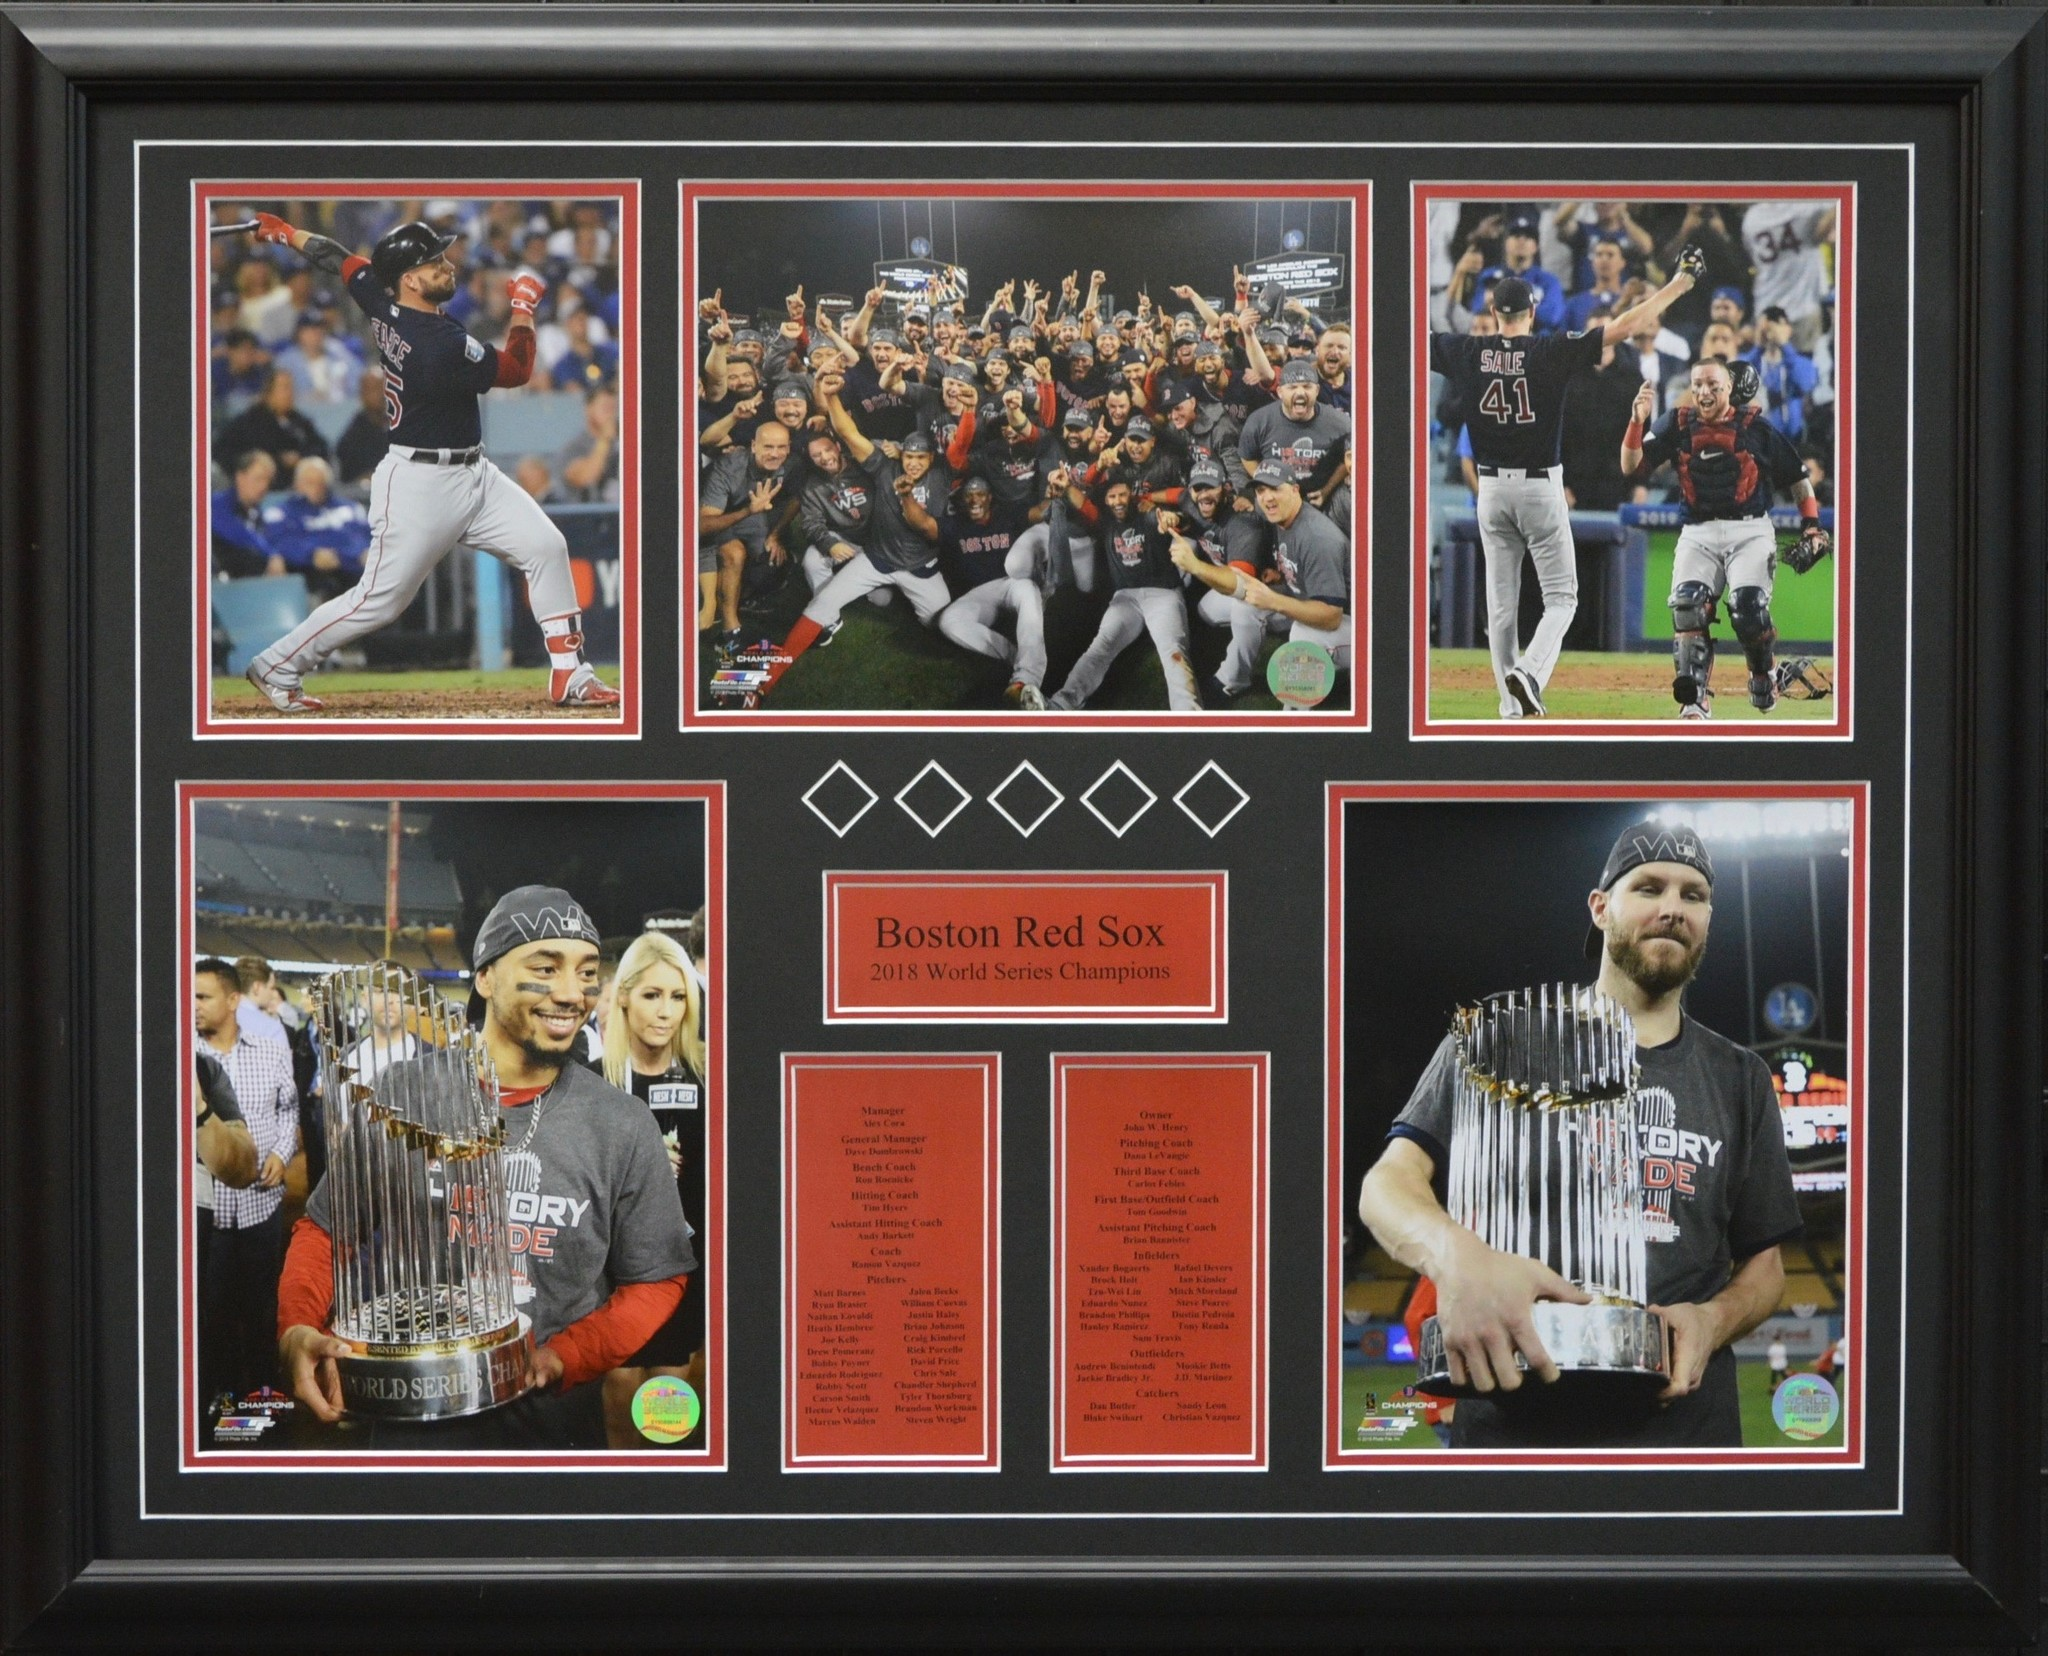 BOSTON RED SOX 2018 WORLD SERIES 22X28 FRAME